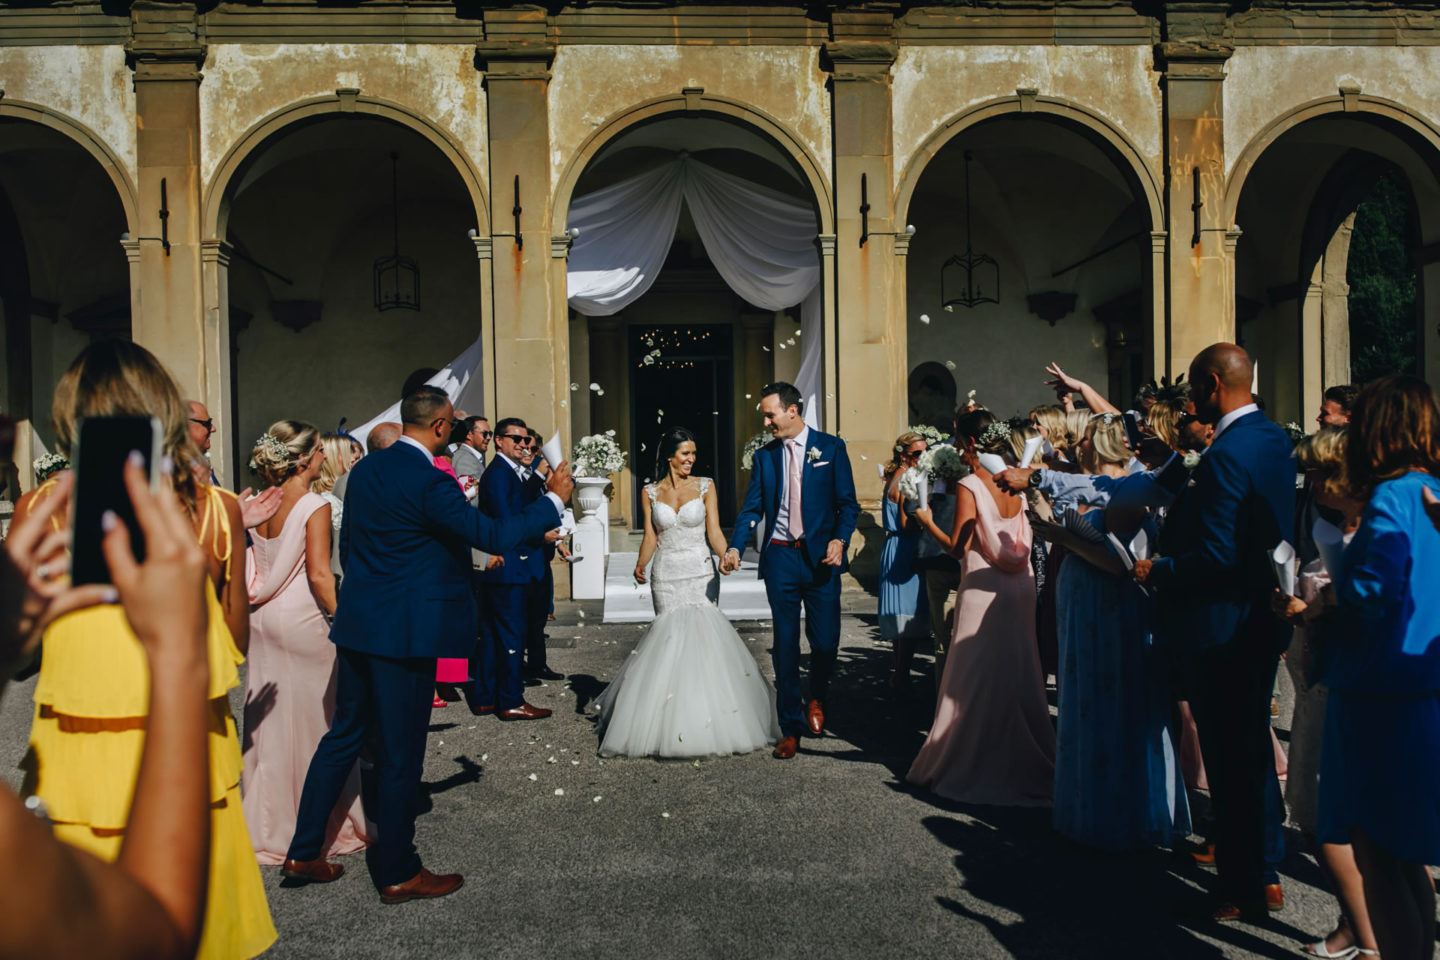 Petals :: Crazy wedding at Vincigliata Castle and Villa San Michele :: Luxury wedding photography - 18 :: Petals